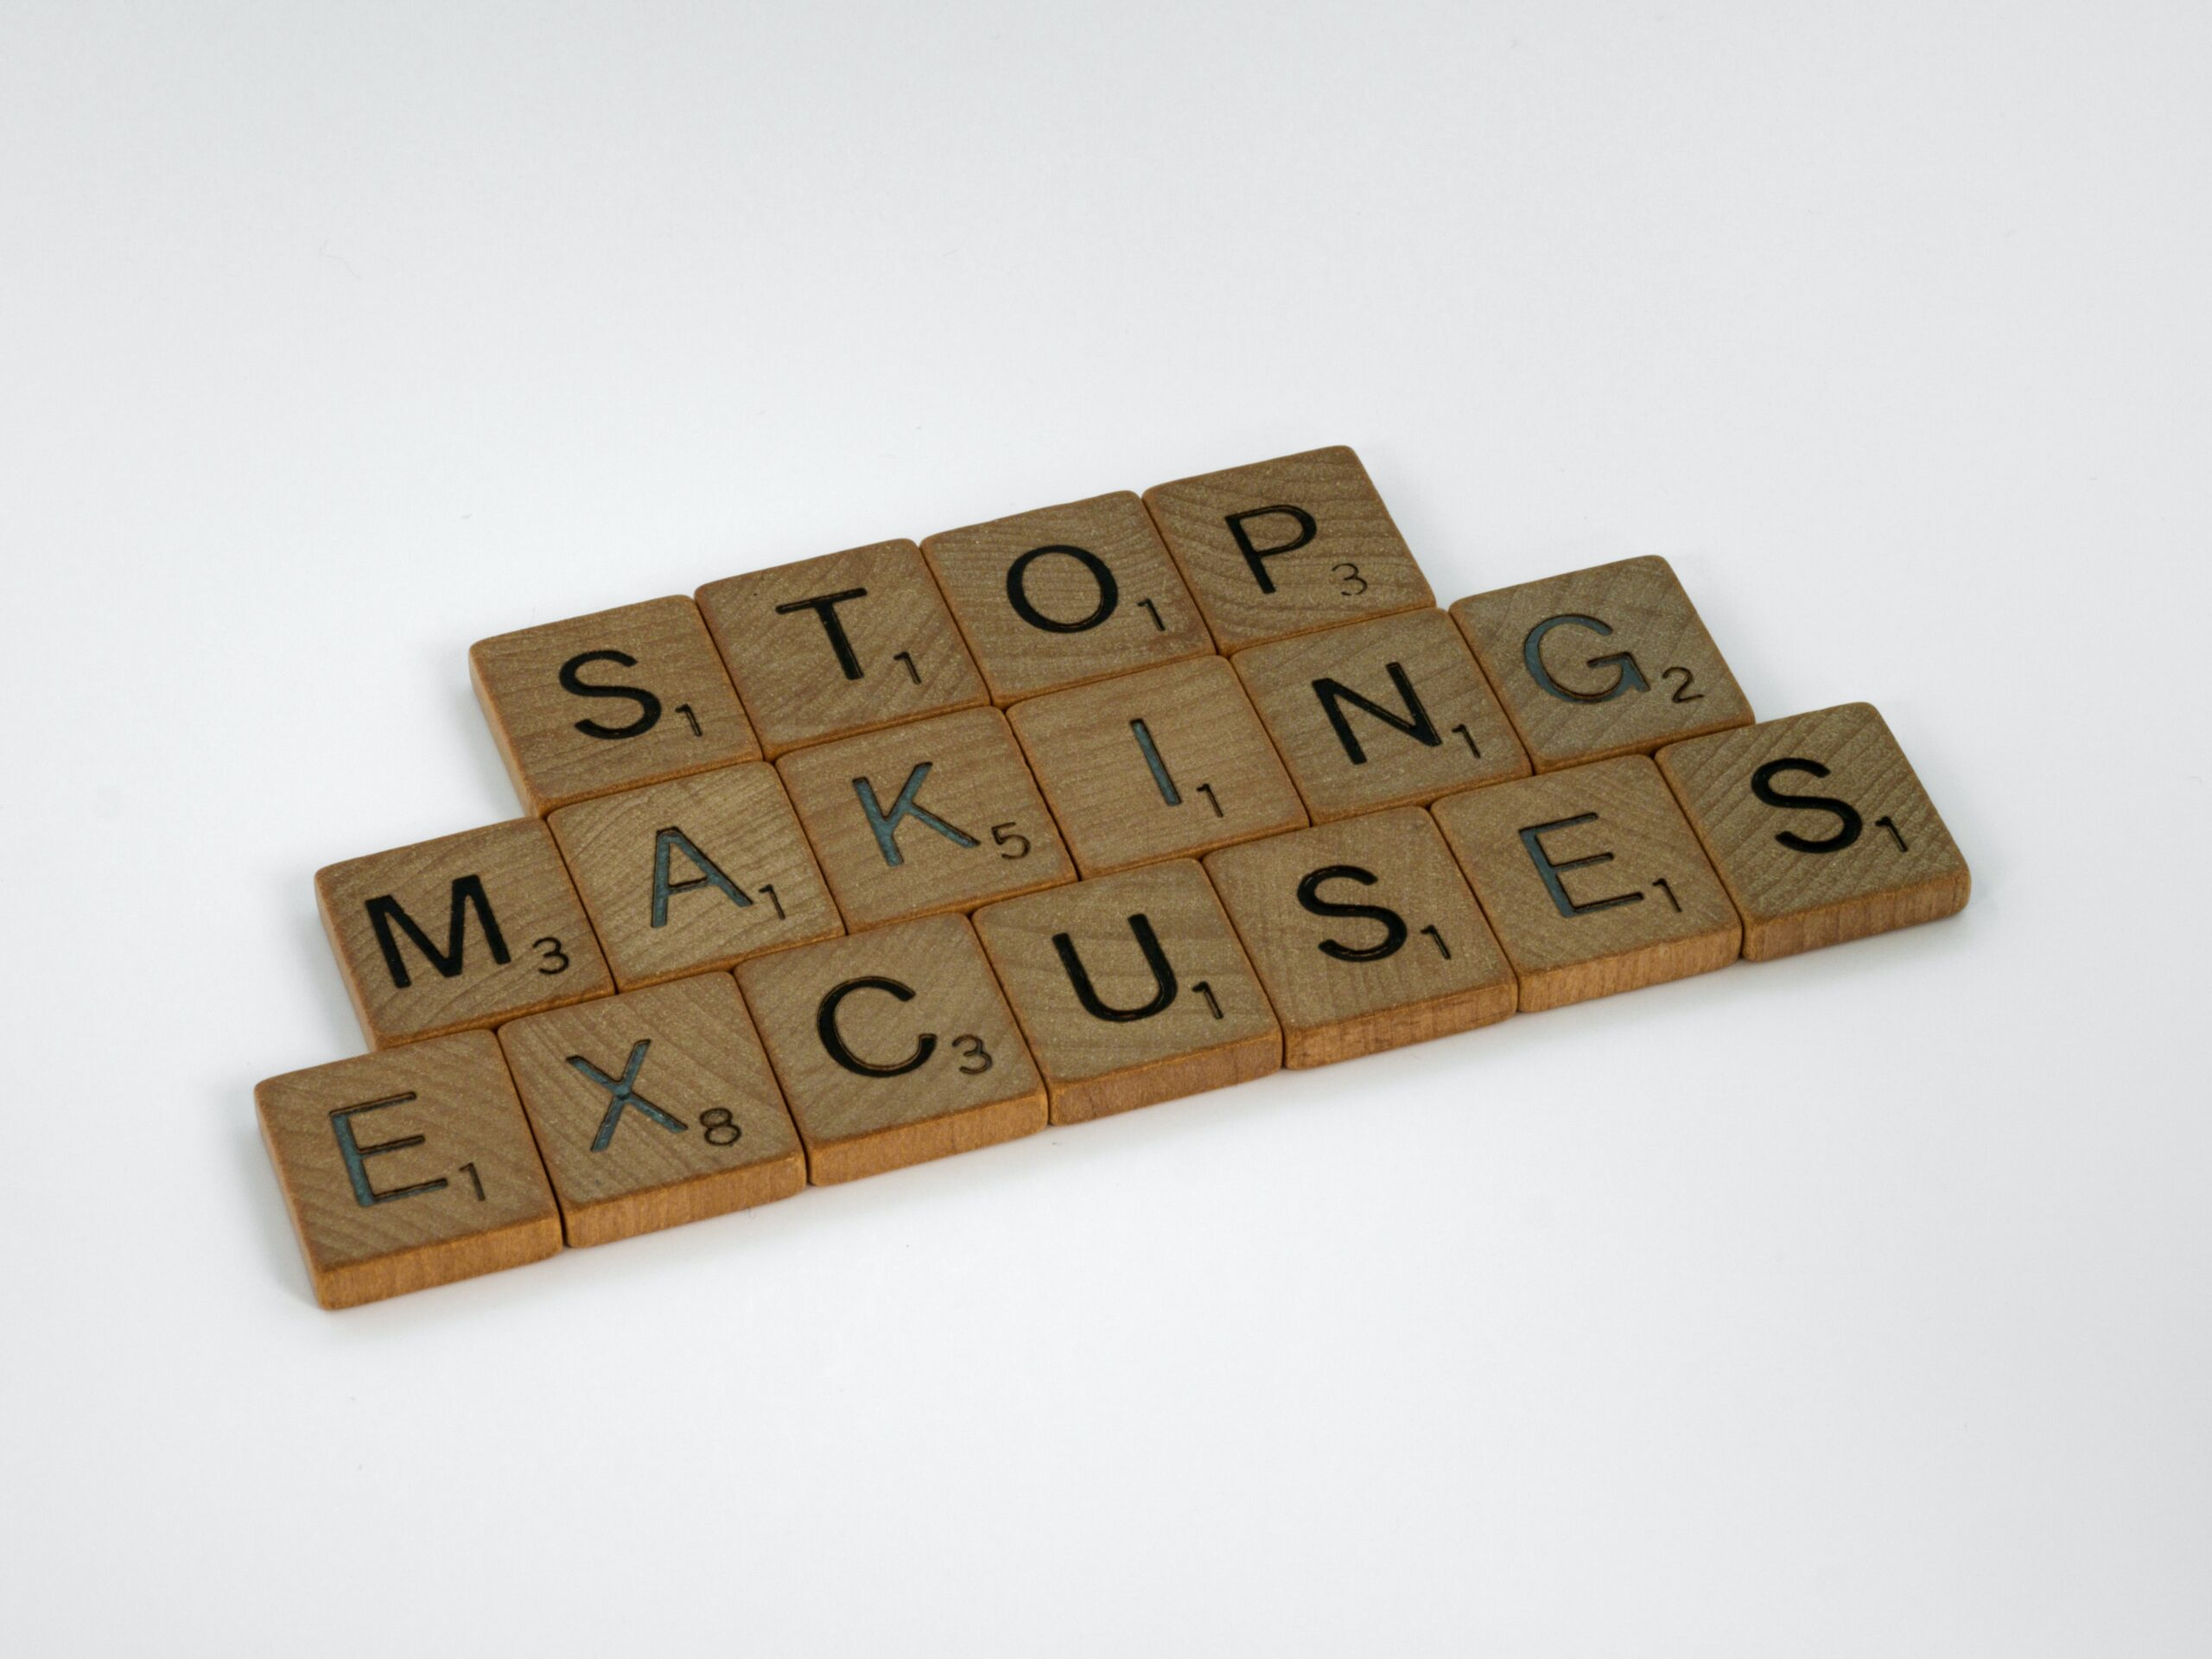 20 Excuses Students Should Stop Making in Life